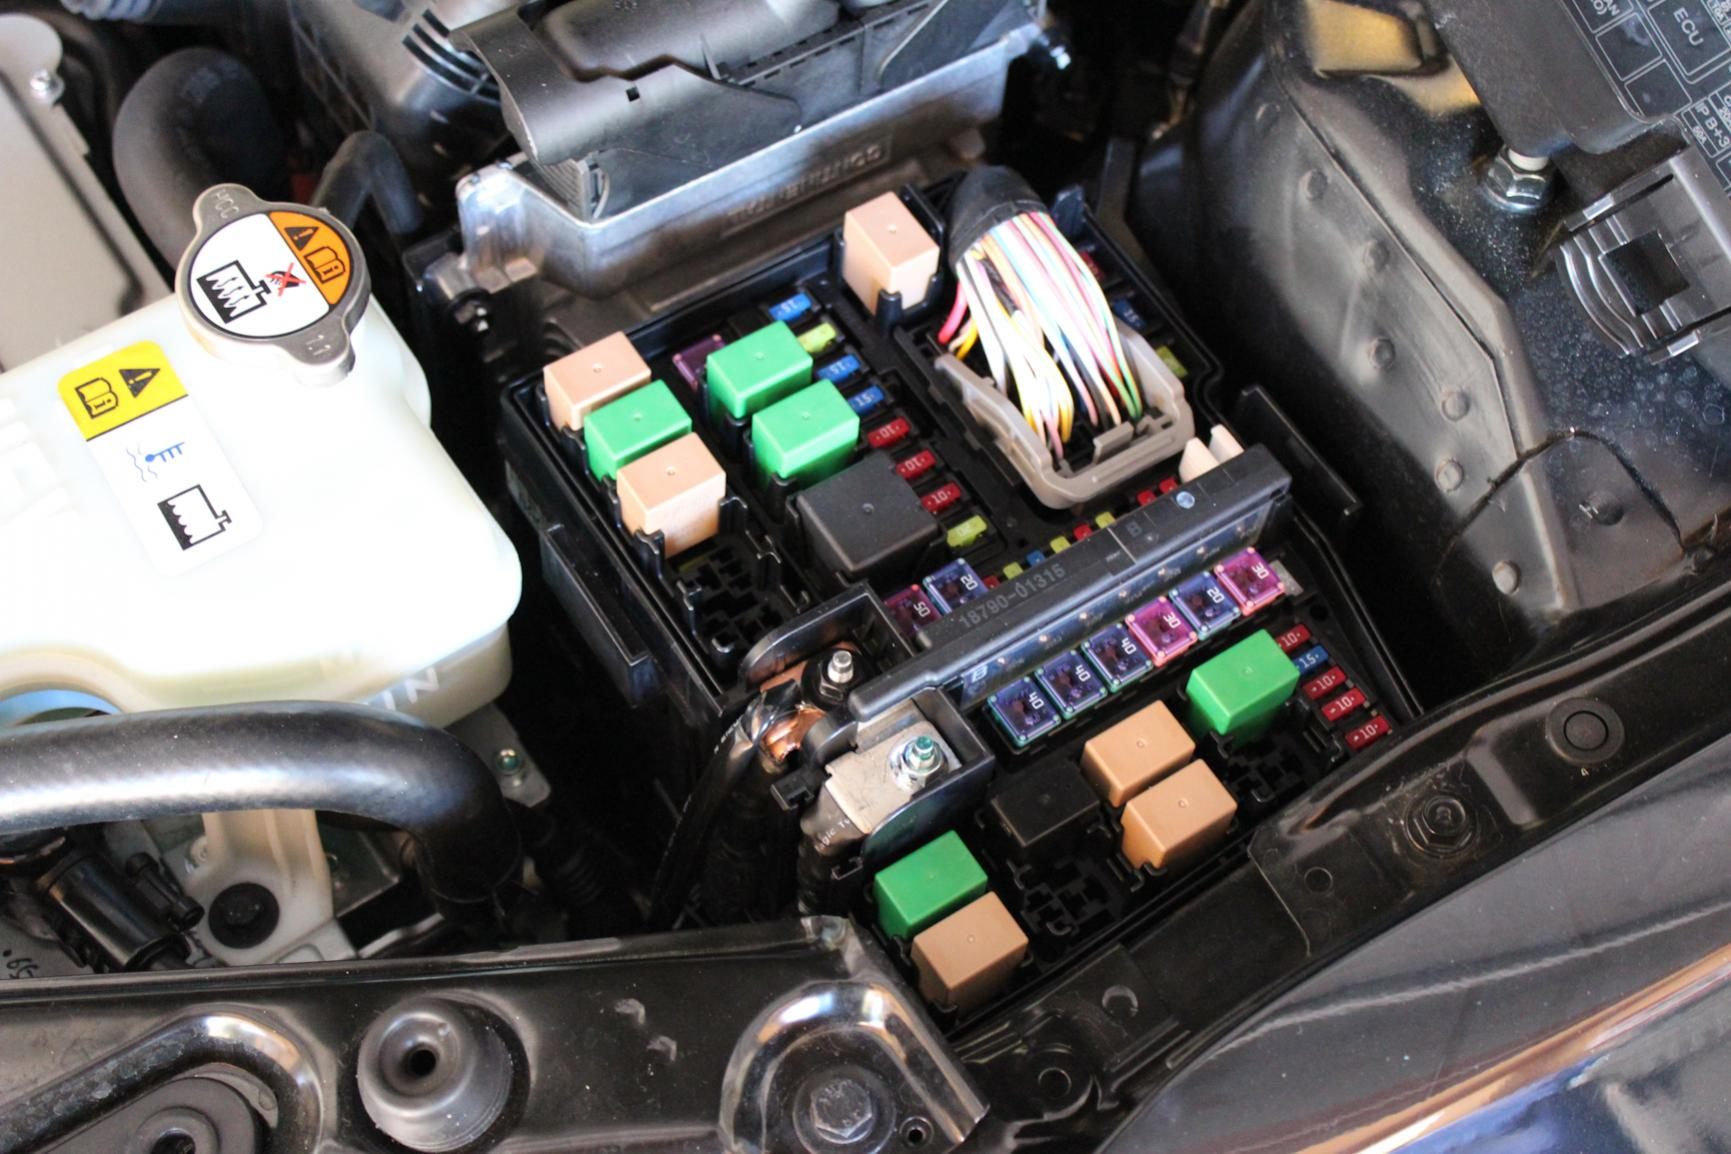 Optima Hybrid (2012) Hid Fog And High Beam Install Tips And Tricks Infiniti  G37 Fuse Box Location Location' 2012 Kia Forte Fuse Box